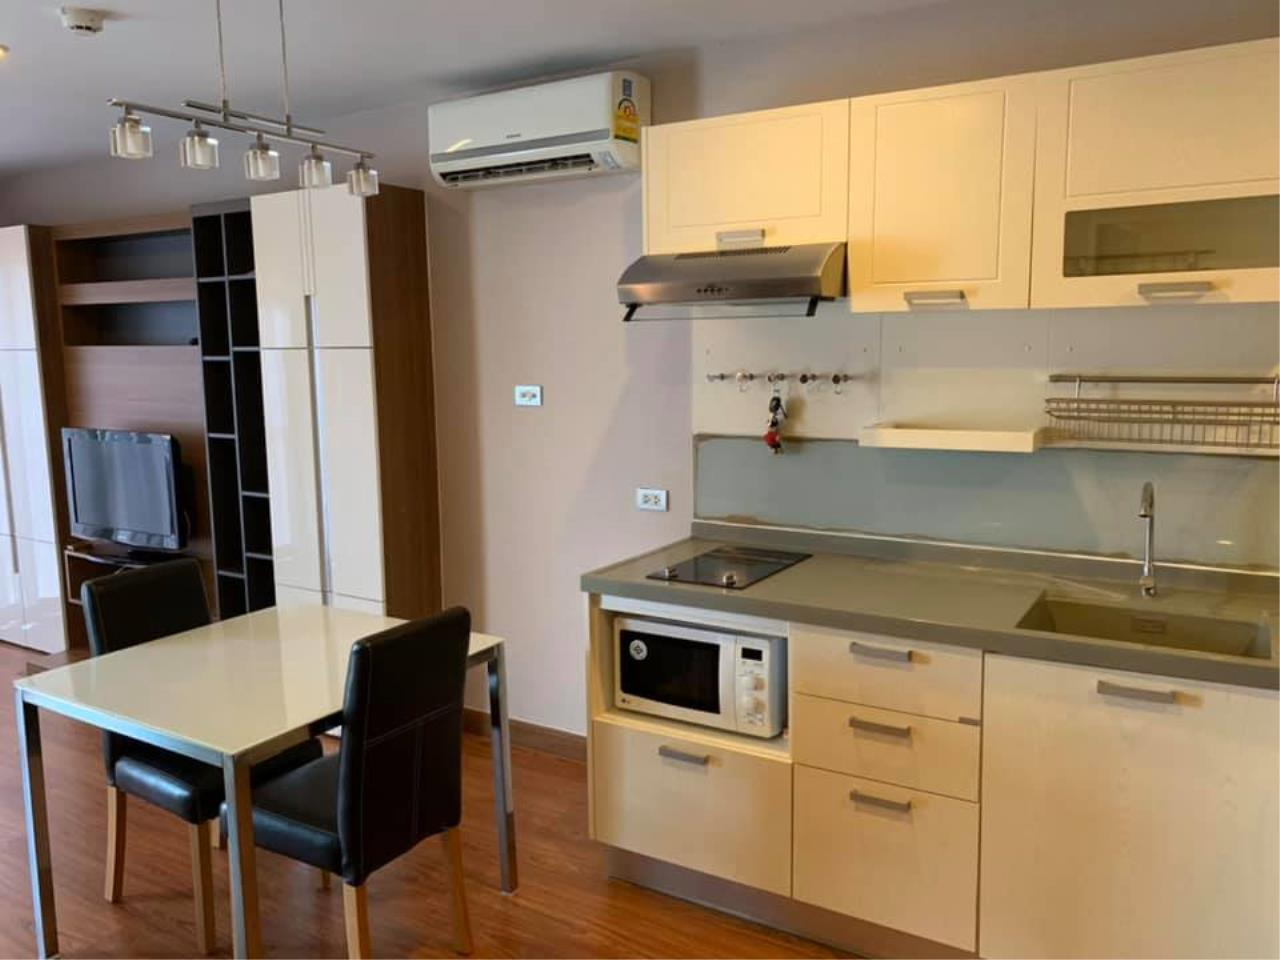 Agent Thawanrat Agency's Condo for rental TOURMALINE GOLD SATHORN – TAKSIN Near BTS.Krung Thon Buri. 1 bedroom,1 bathroom. size 40 sqm.Floor 10 th. fully furnished Ready to move in 1